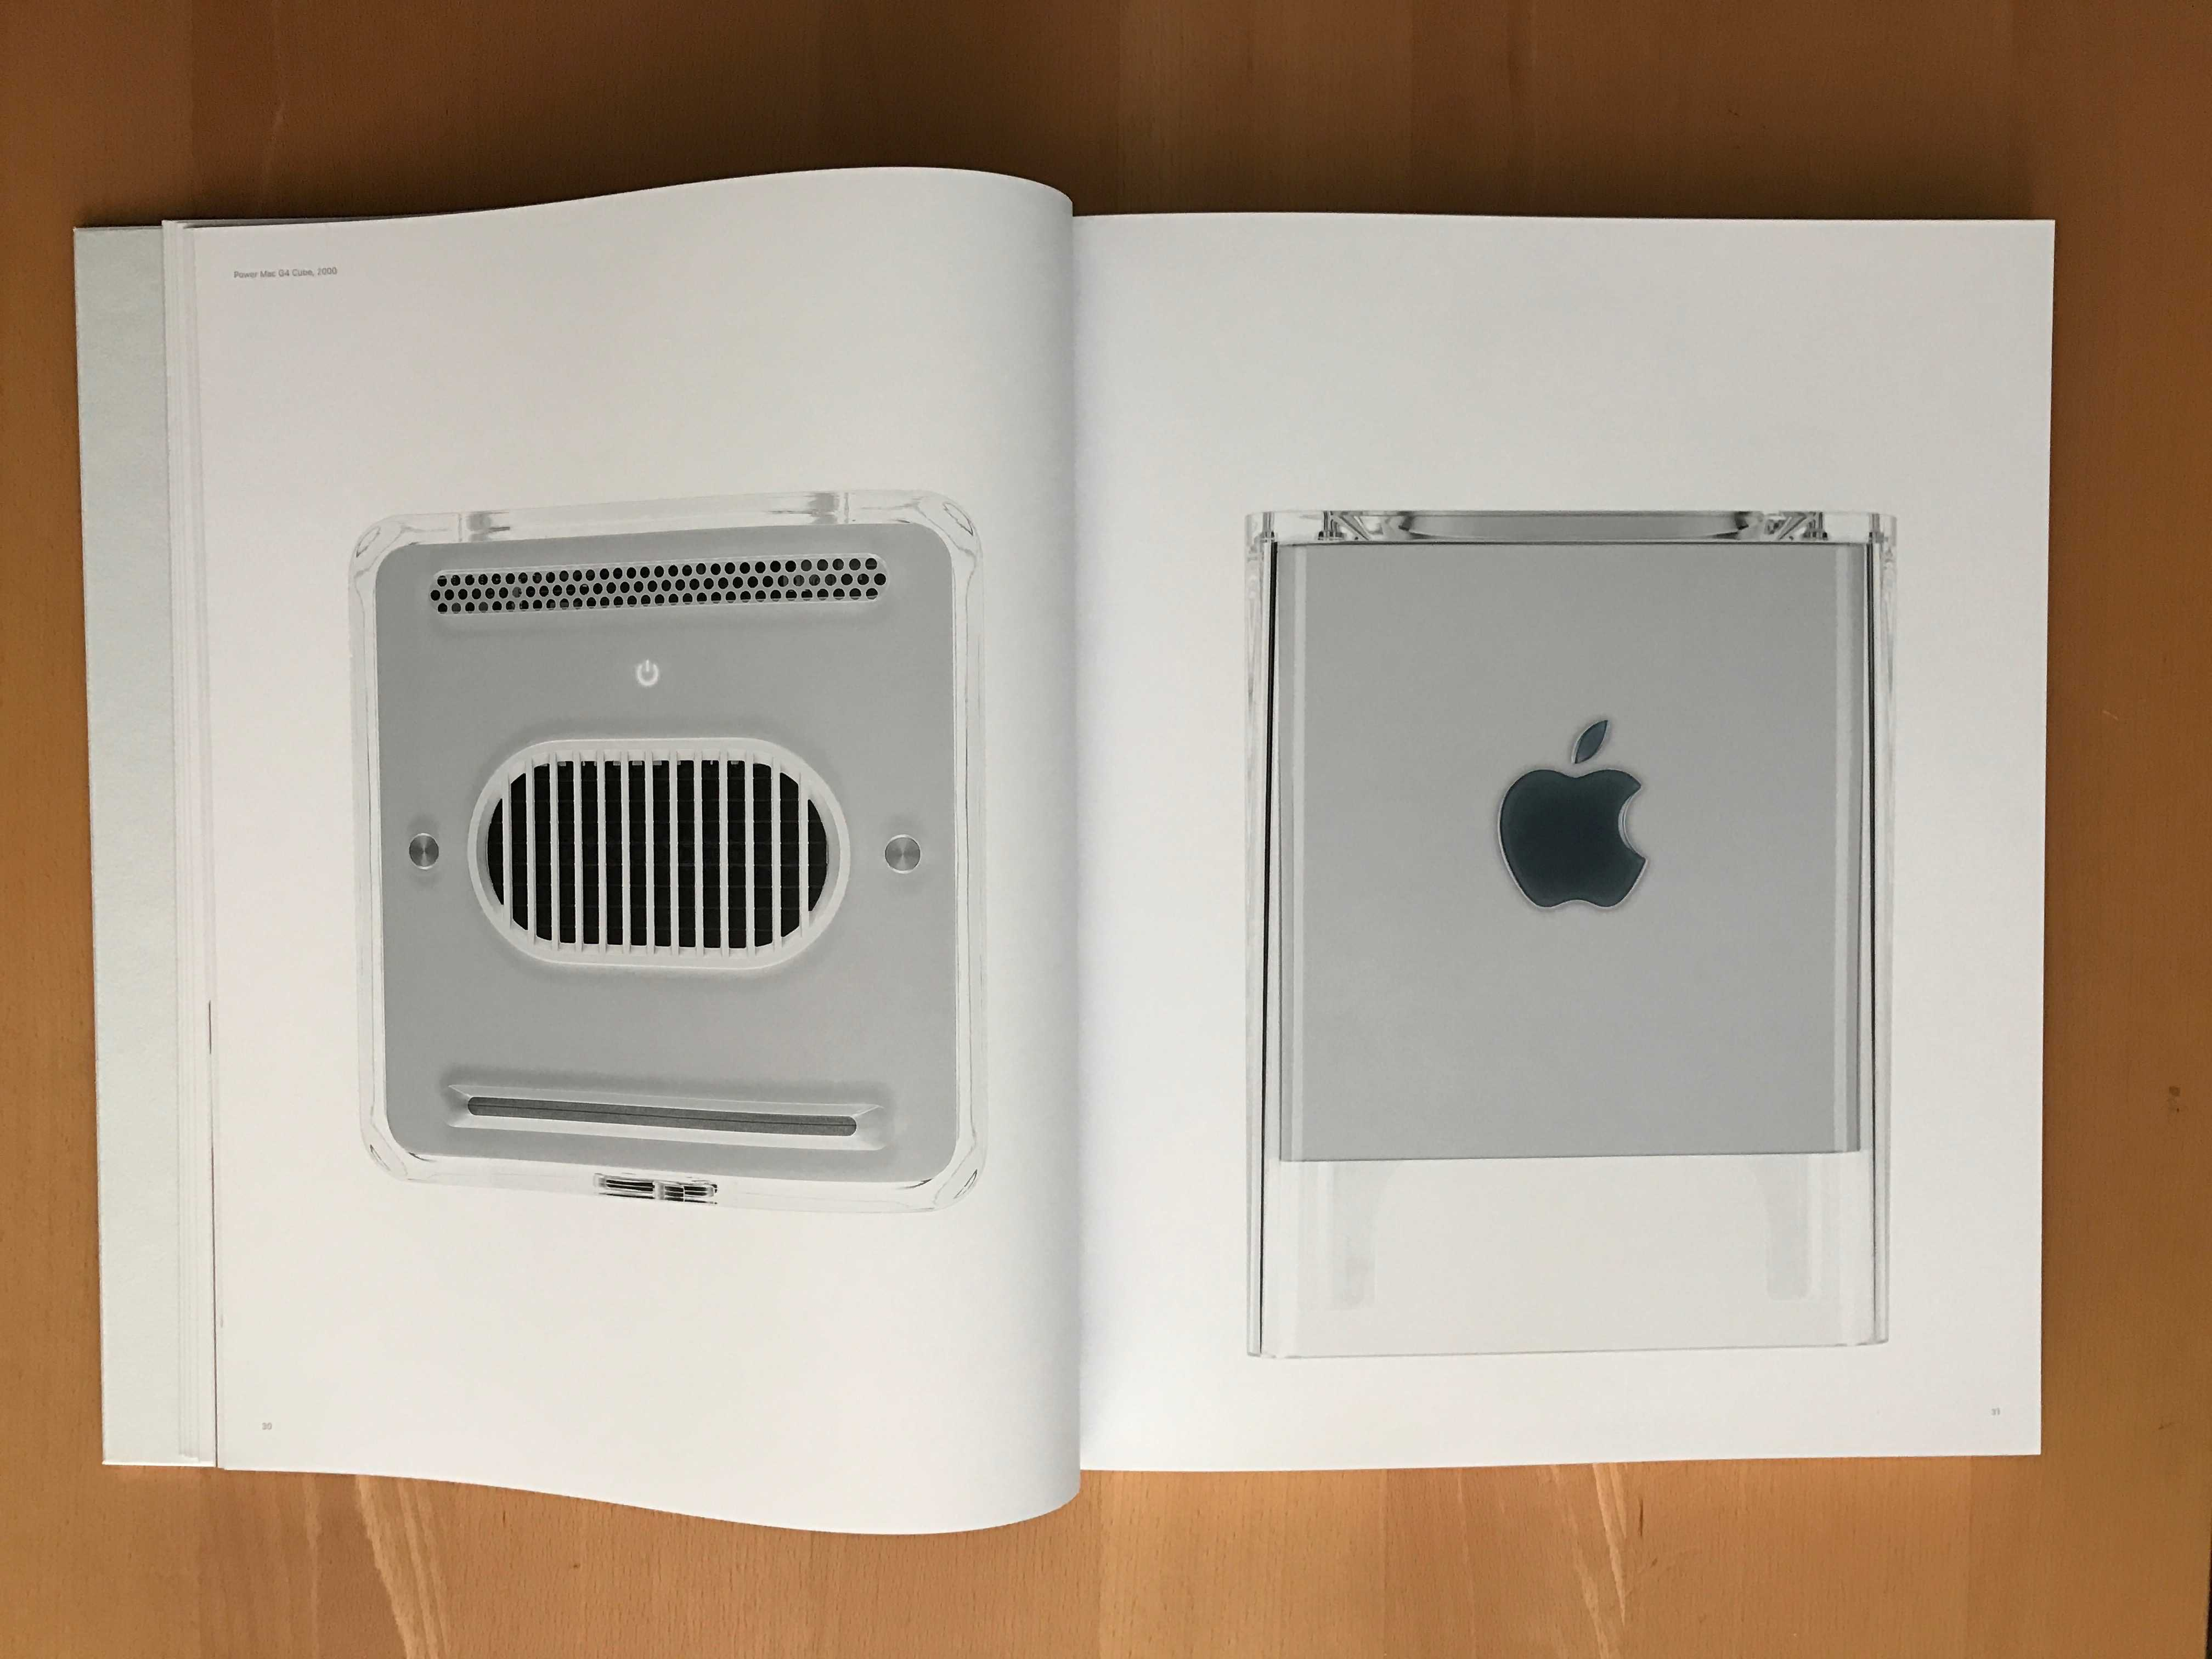 Image from Cult Of Mac